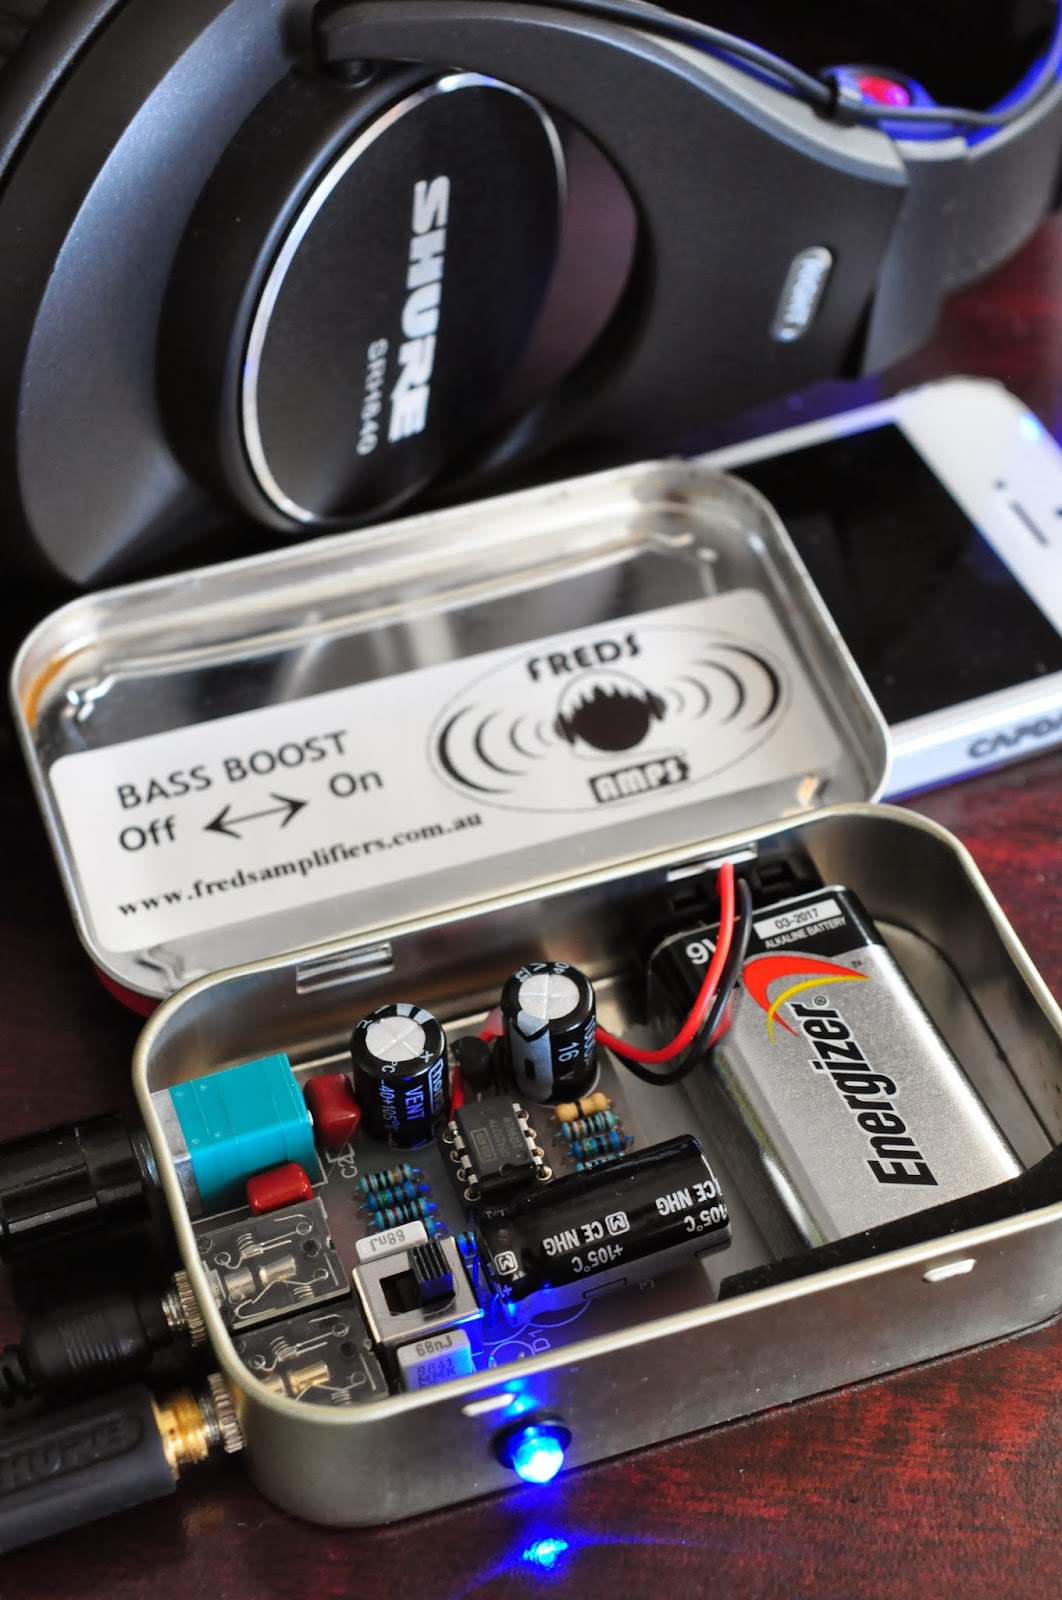 My Cmoy Arrived Headphone Amplifier So Some Are Cost A Little Bit Higher Because Of The Unique Tin I Got One From Perth It Have Bass Boost Function Now Sound Is Reall